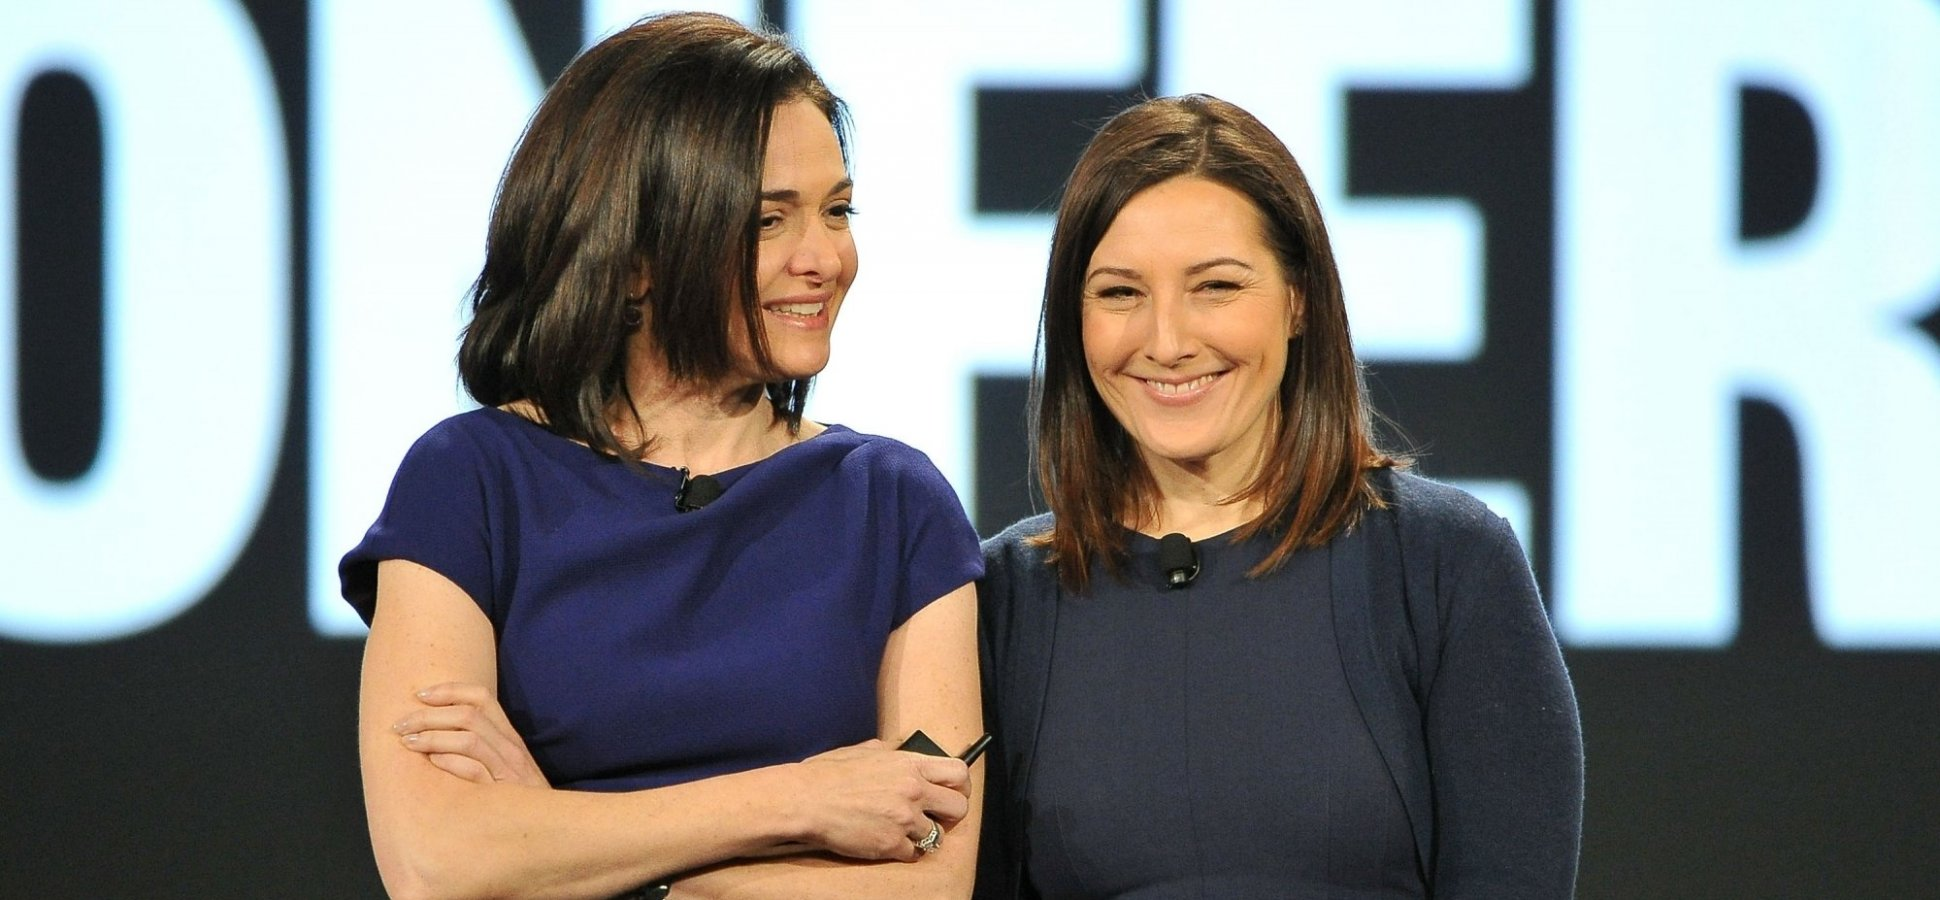 1 Question Facebook's Head of HR Says You Should Always Ask in an